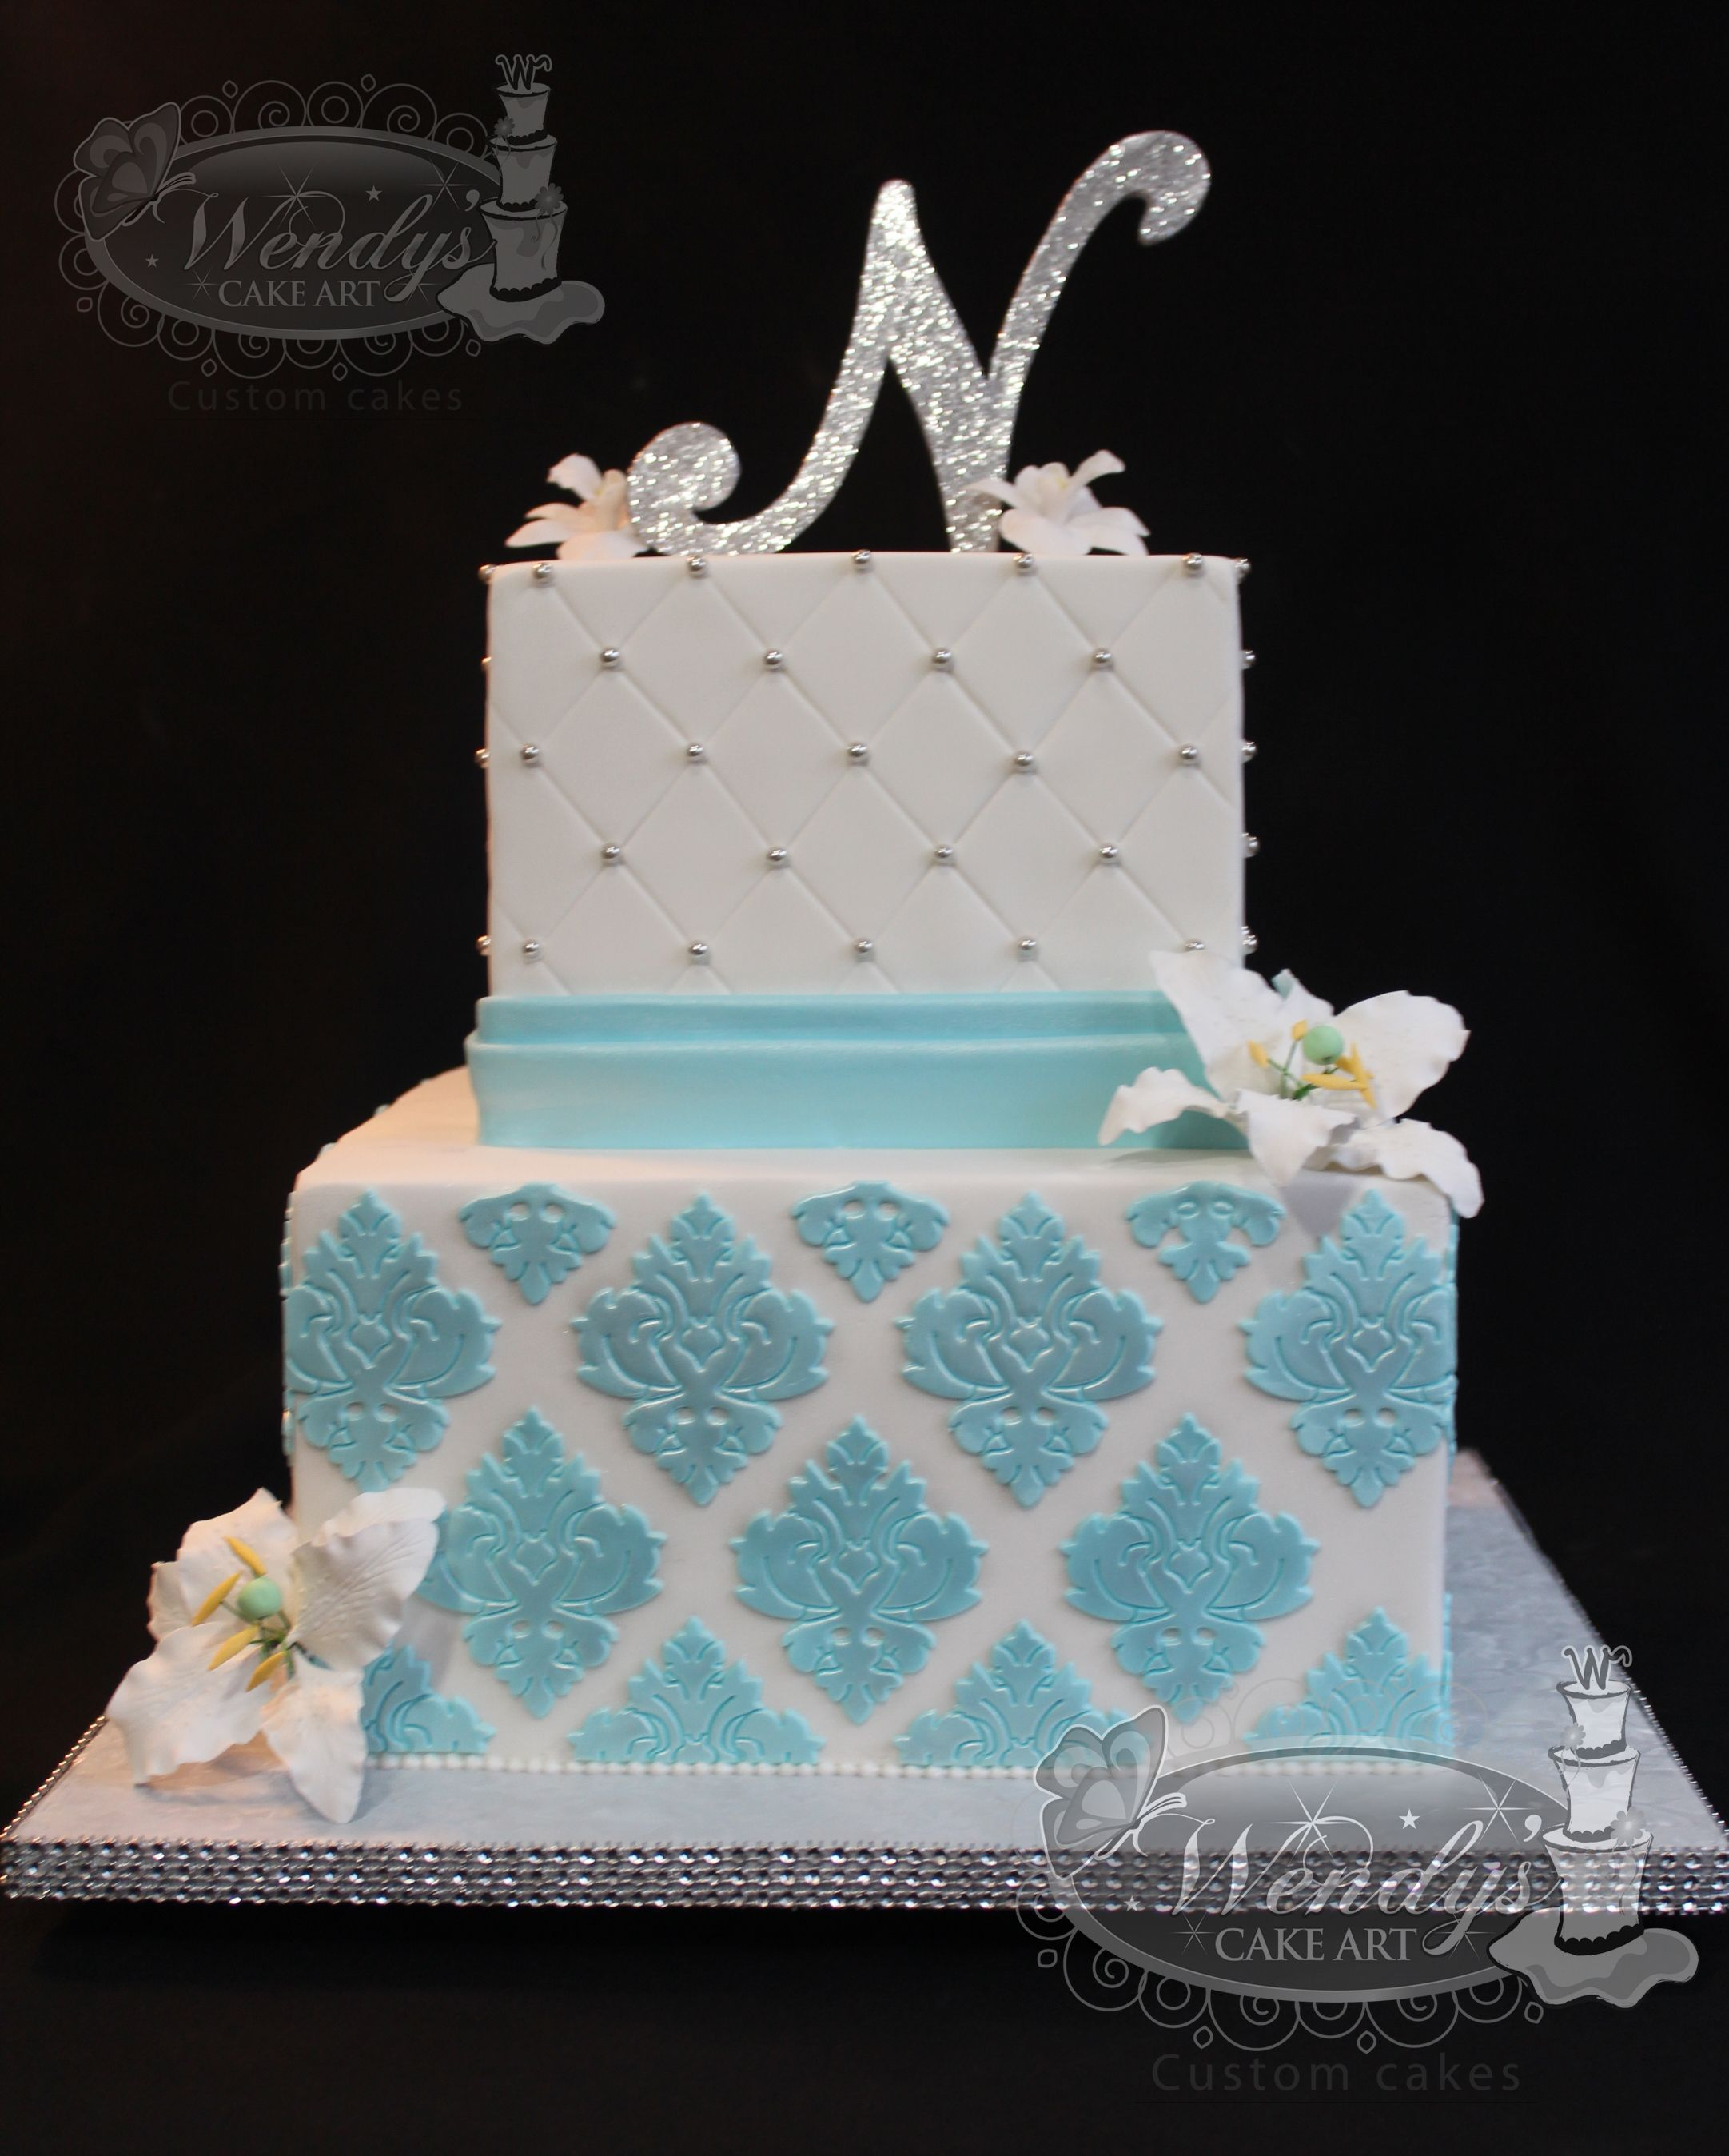 Wendyscakeart Two Tiers Cake Blue And White Cake